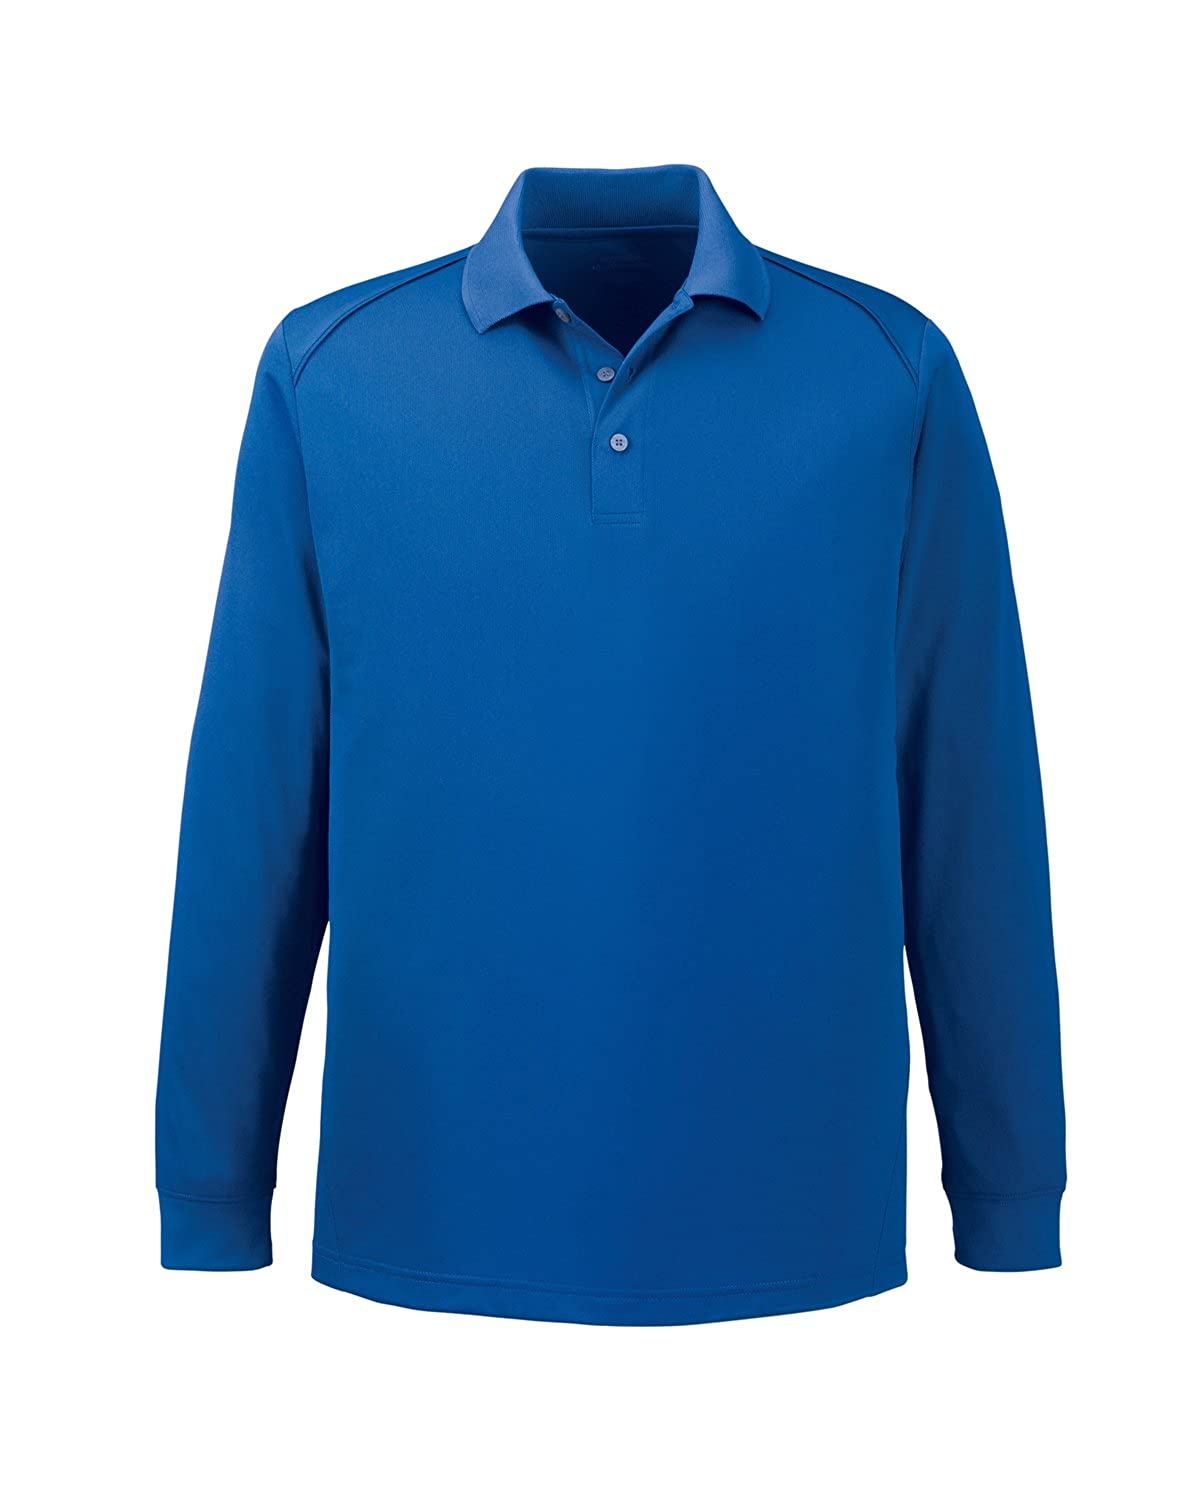 Extreme Armour Eperformance Snag Protection Long Sleeve Polo -85111- -TRUE ROYAL 4 -3XL